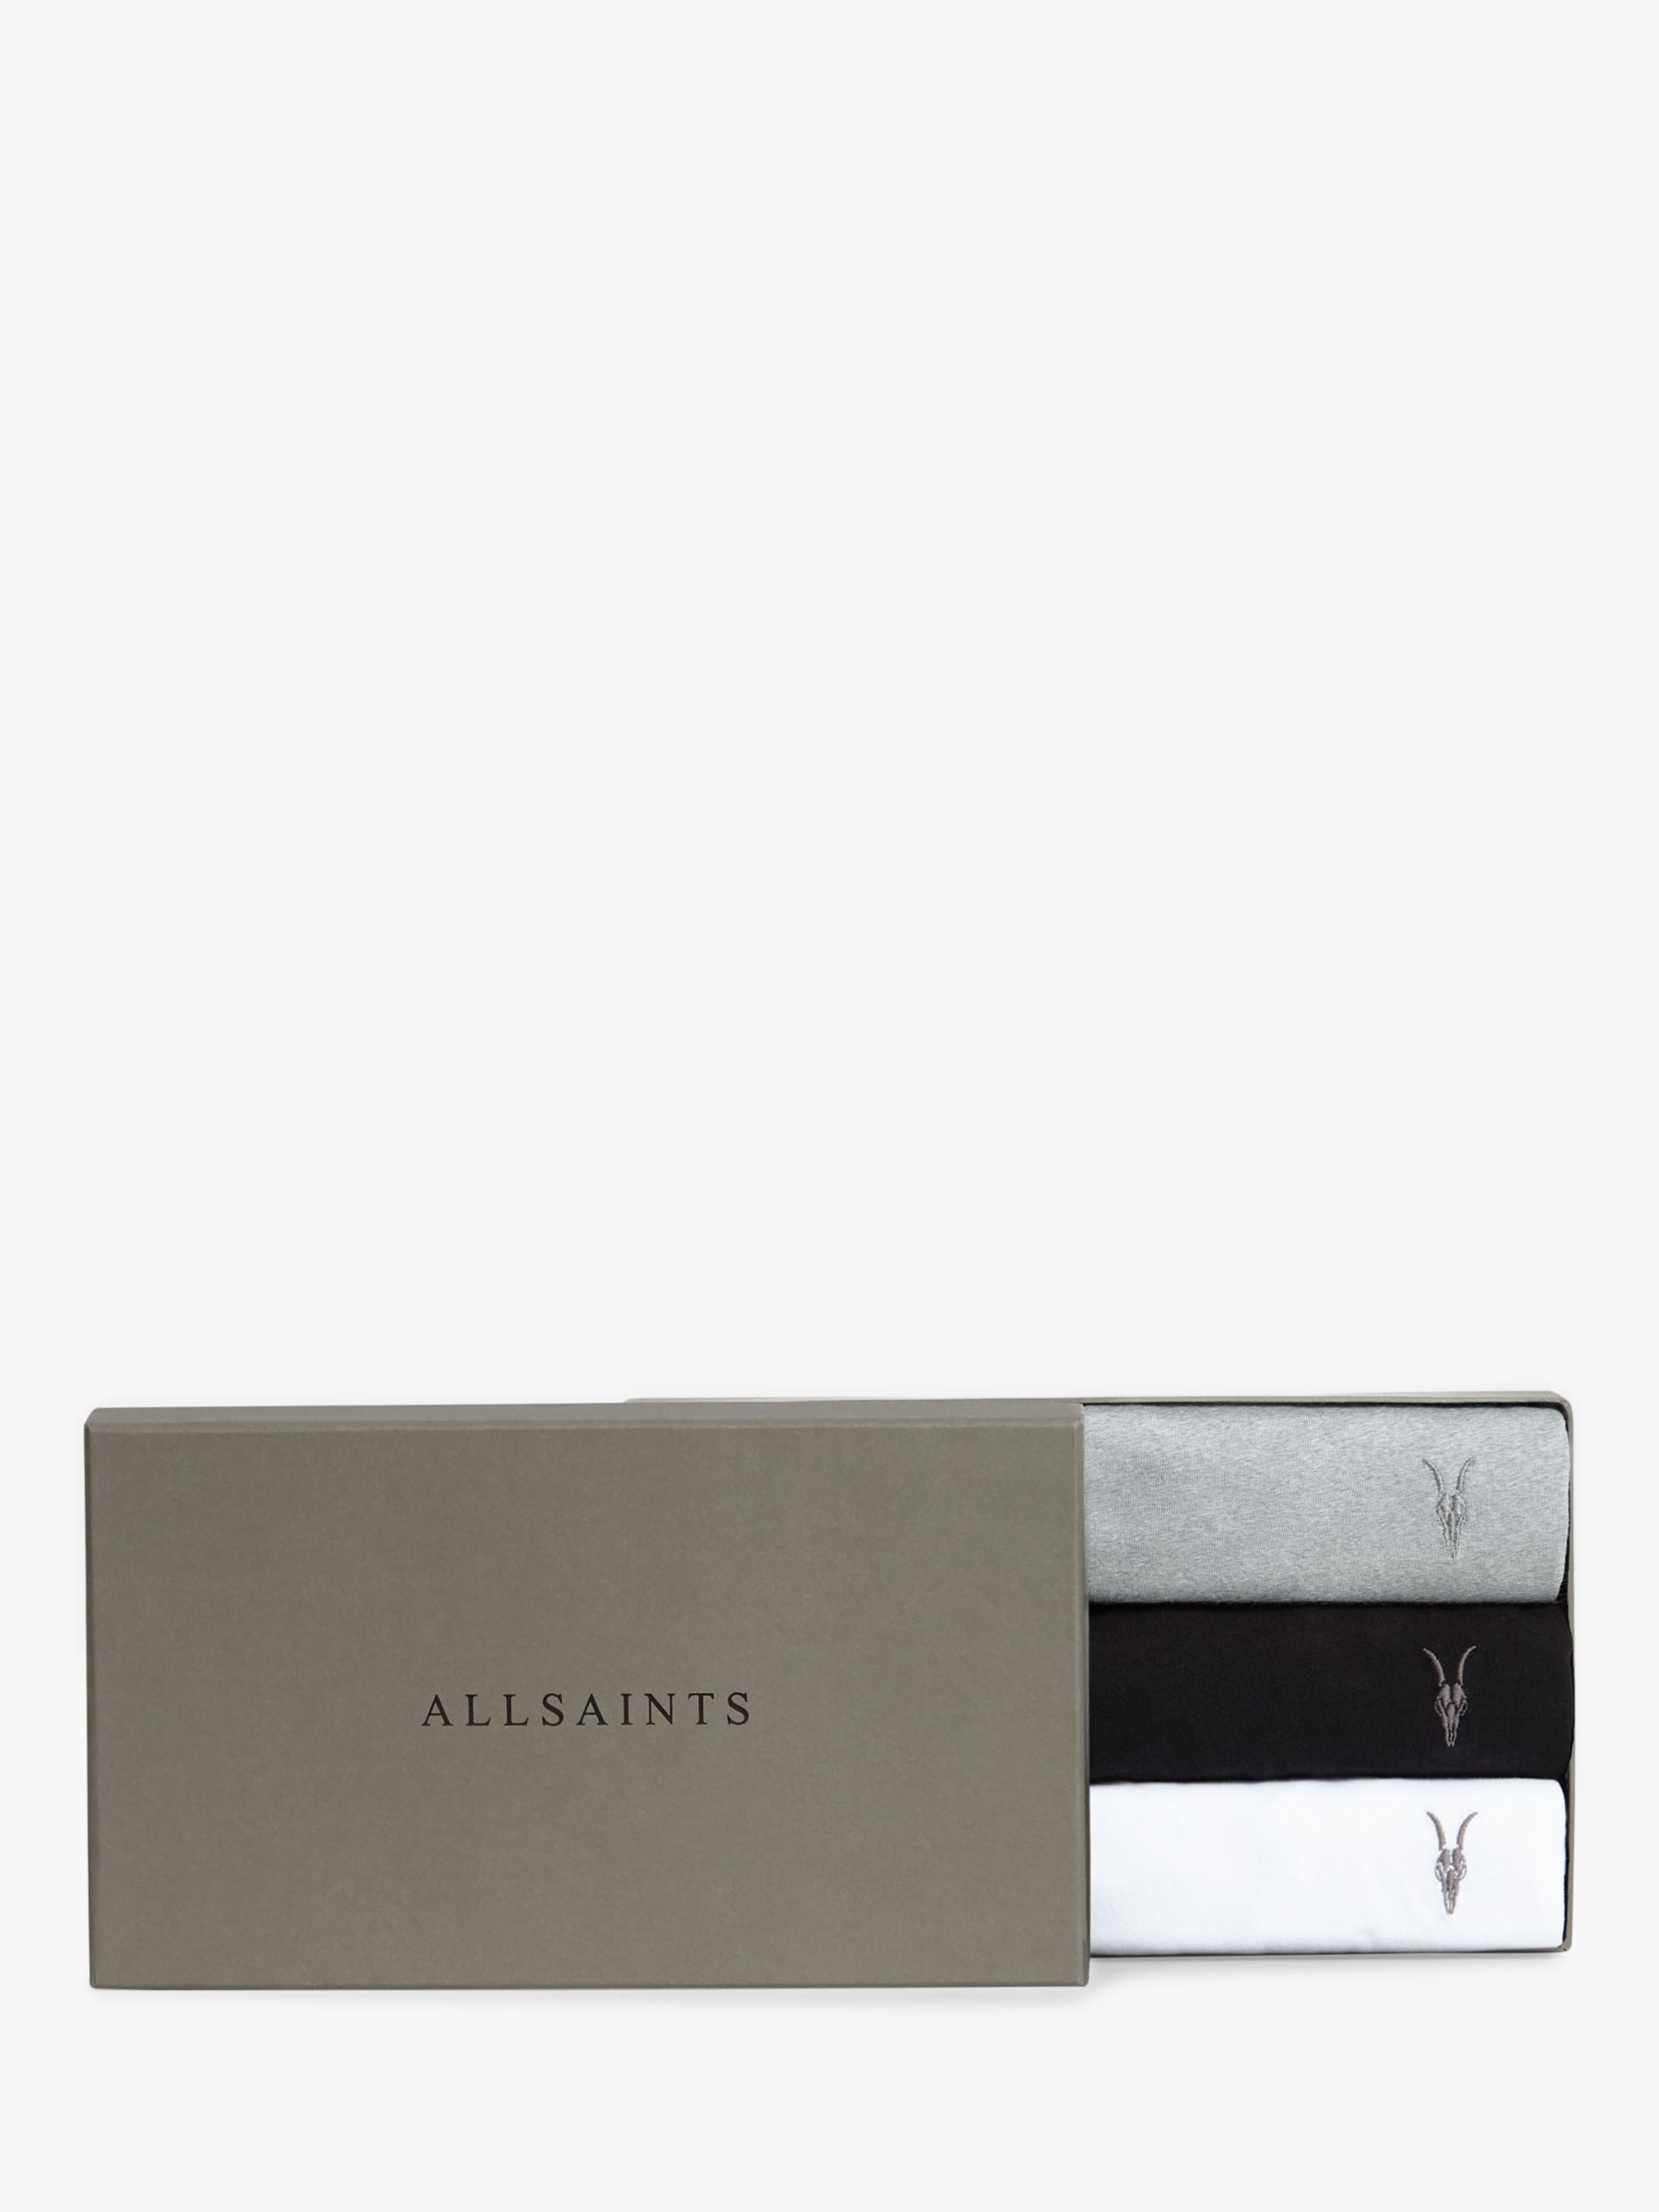 AllSaints AllSaints Tonic Crew Neck T-Shirt, Pack of 3, White/Black/Grey